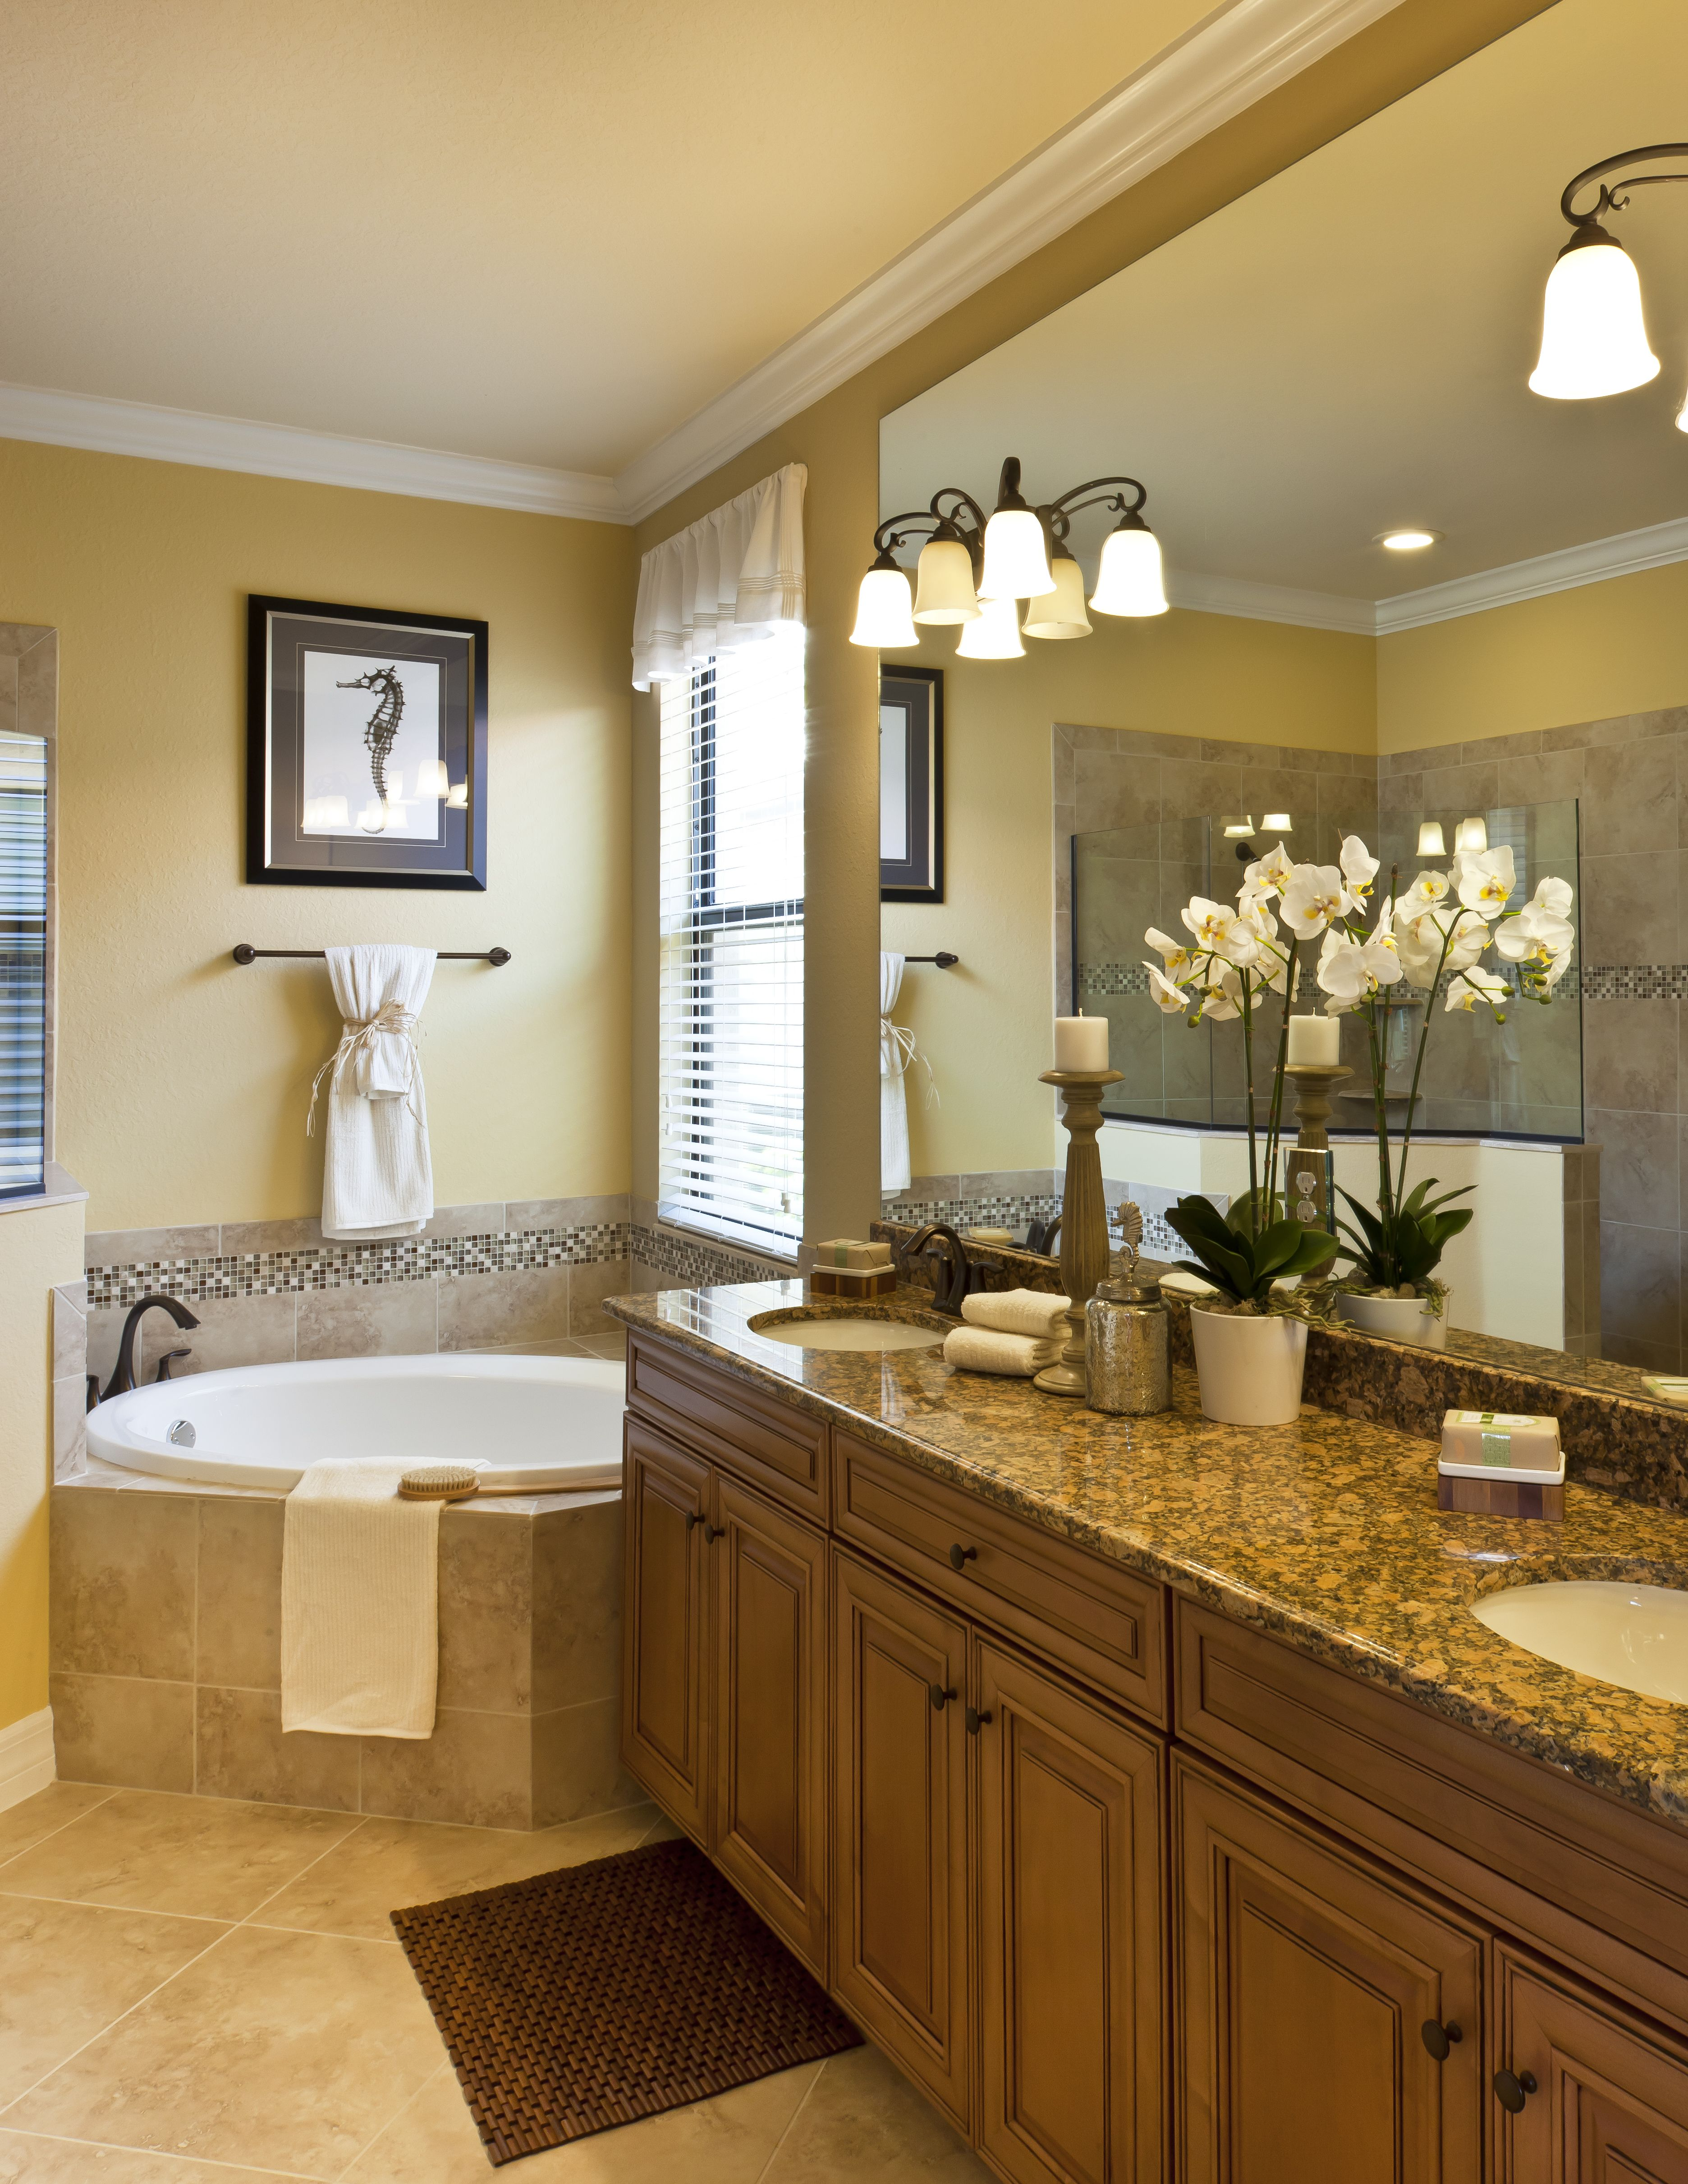 Spa Like Master Bathroom In This Isabella Model Home